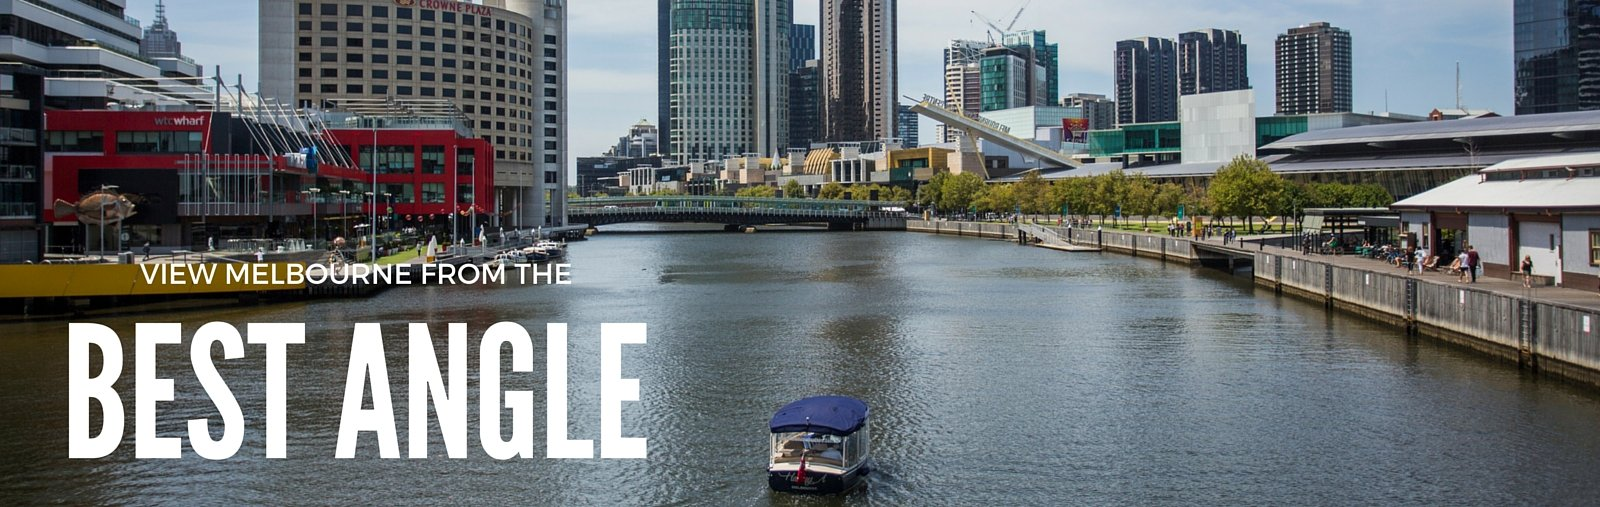 View Melbourne from the best angle with Melbourne Boat Hire